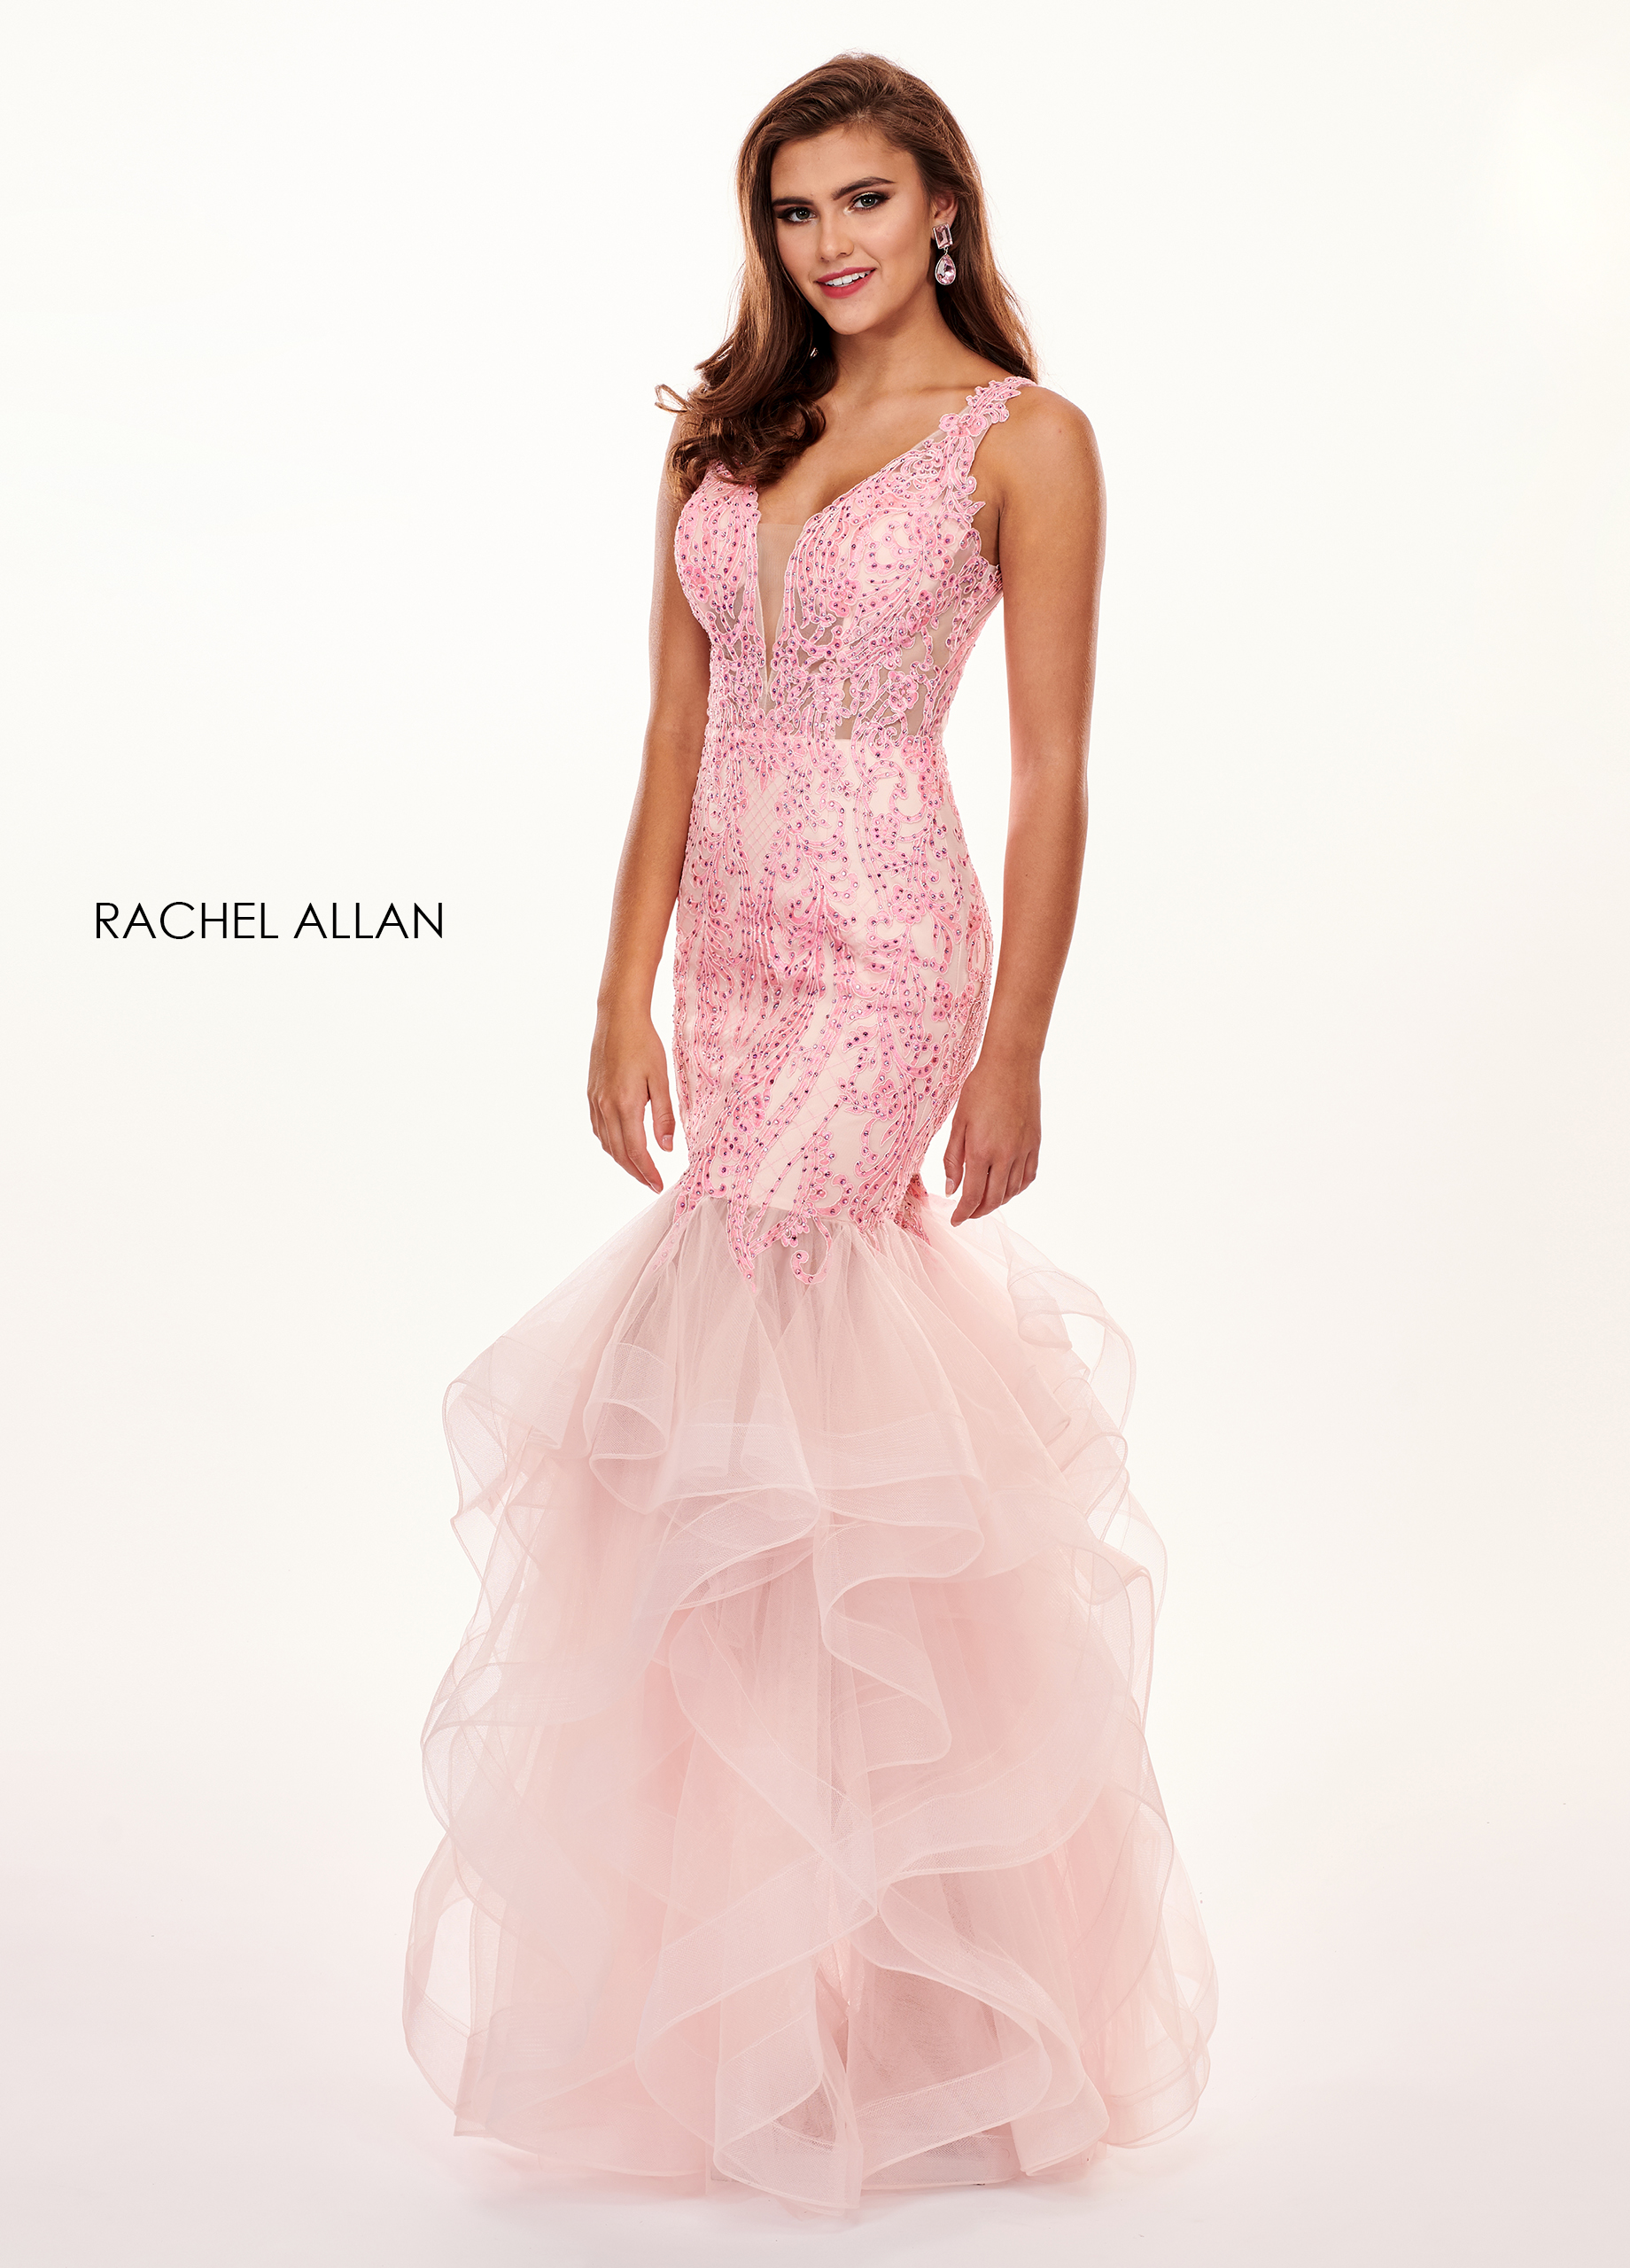 V-Neck Mermaid Prom Dresses in Pink Color